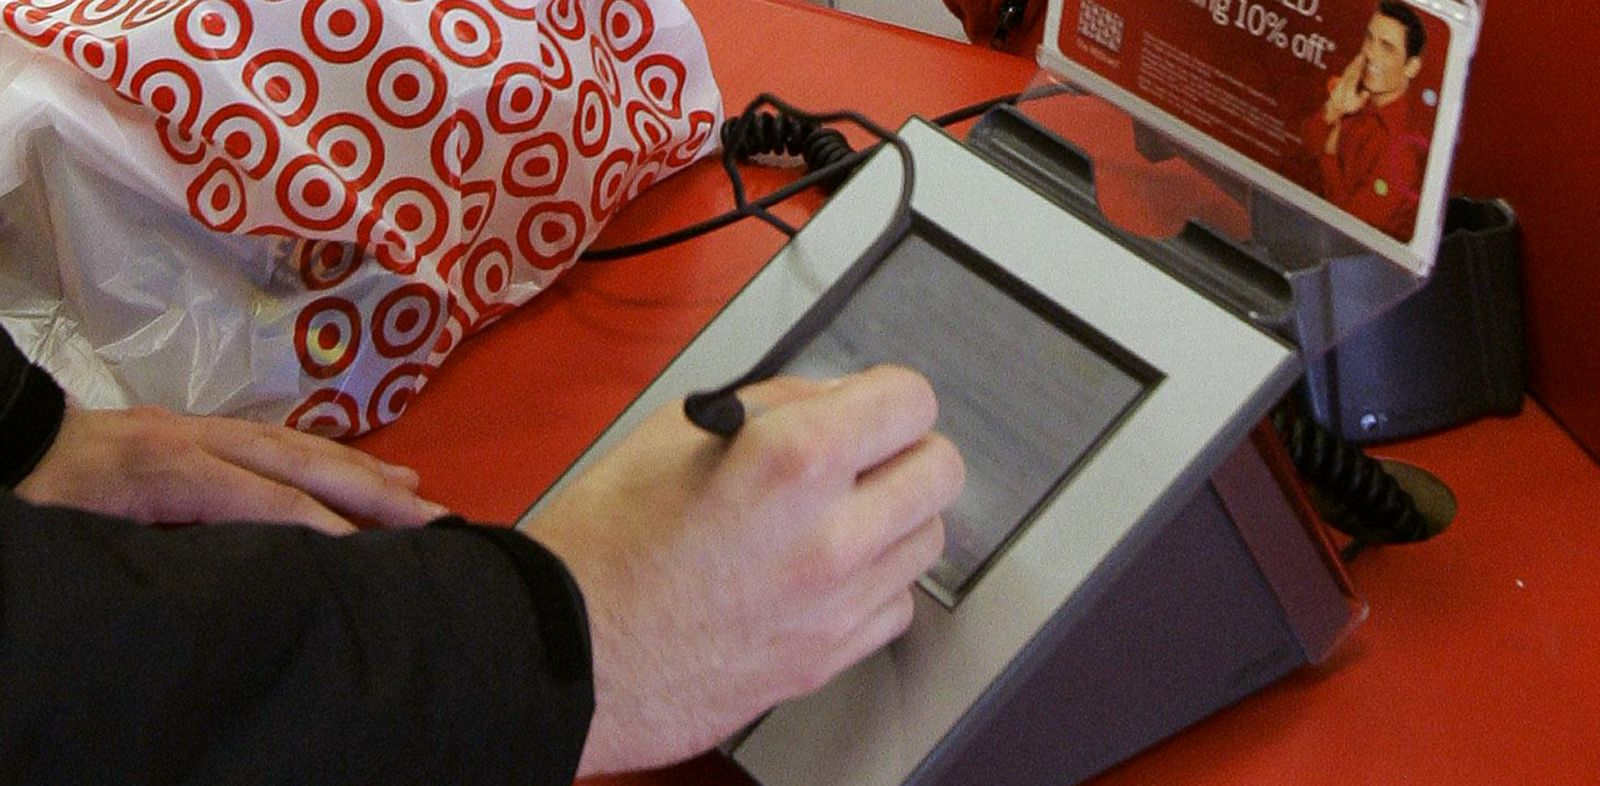 PHOTO: A customer signs on the screen of a credit card machine at a Target store in Tallahassee, Fla., in this Jan. 18, 2008 photo.